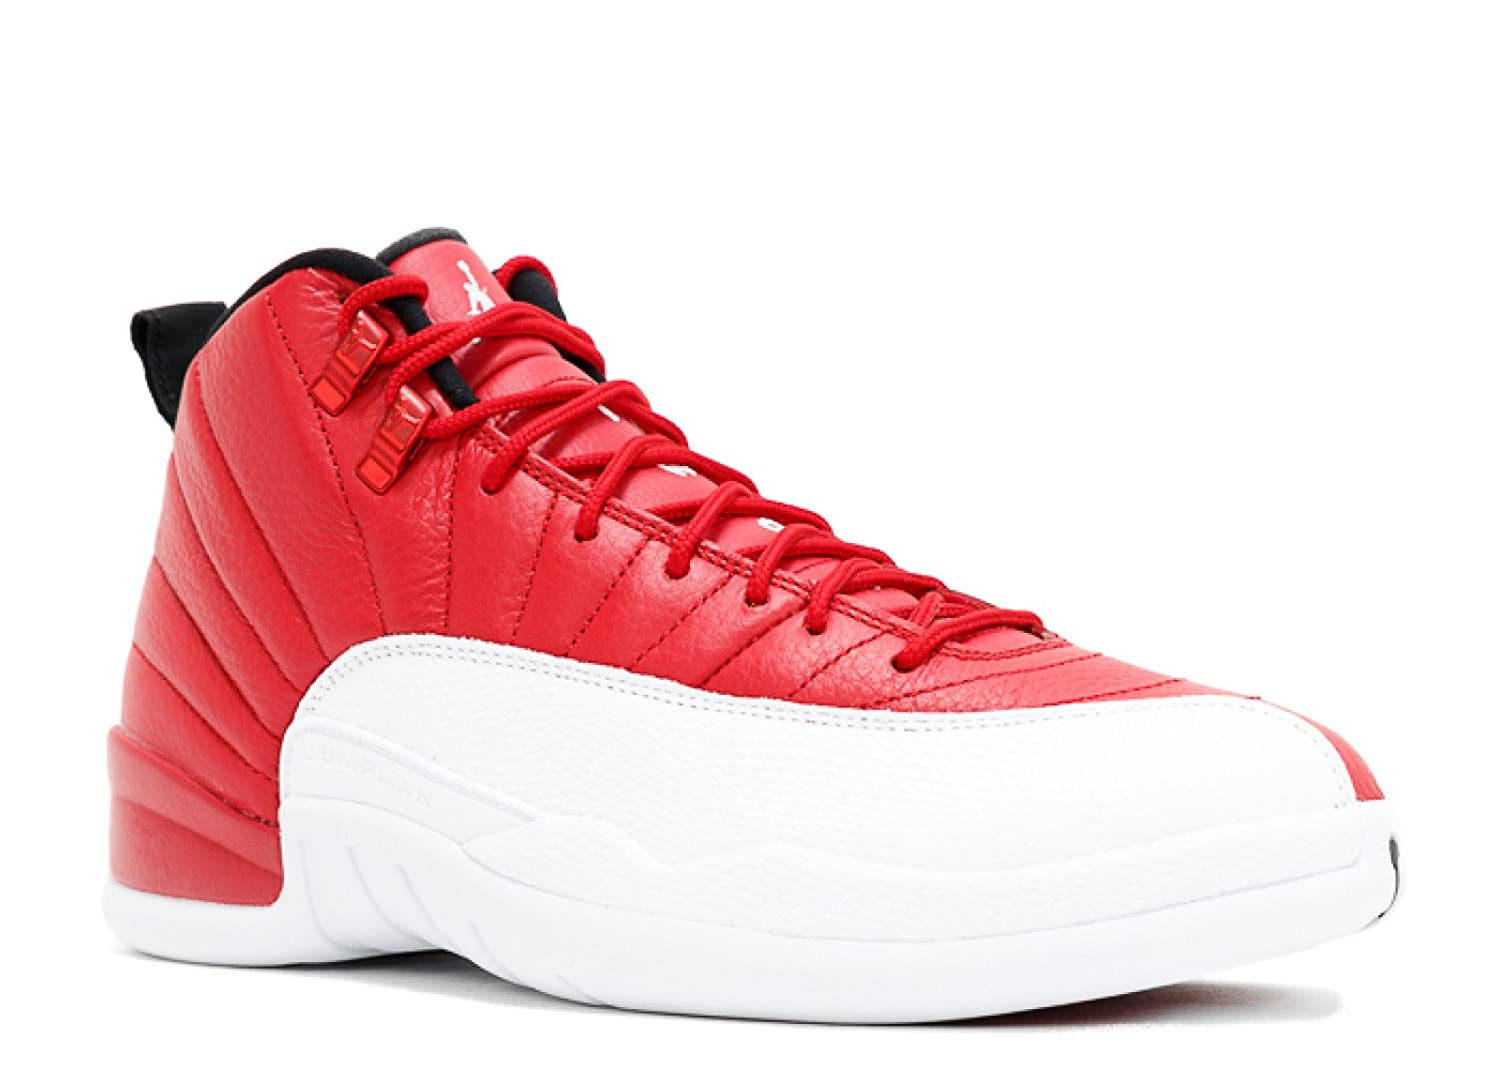 the best attitude 4a534 720f5 Nike Men's Air Jordan 12 Retro, Gym Red/White-Black, 18